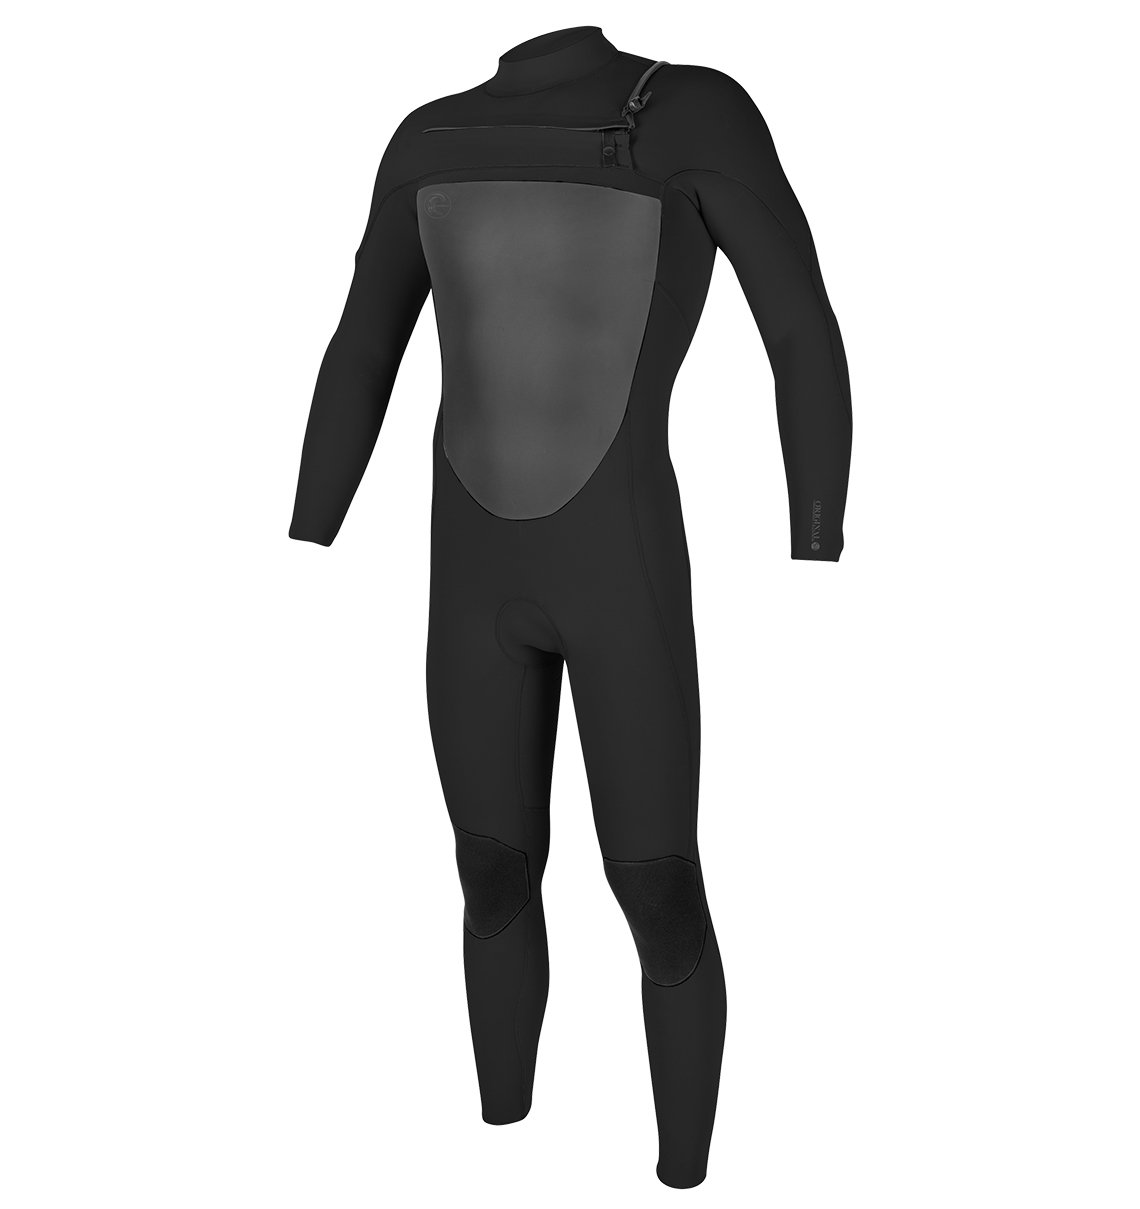 O'Neill Men's O'Riginal 4/3mm Chest Zip Full Wetsuit, Black/Black, Medium by O'Neill Wetsuits (Image #1)